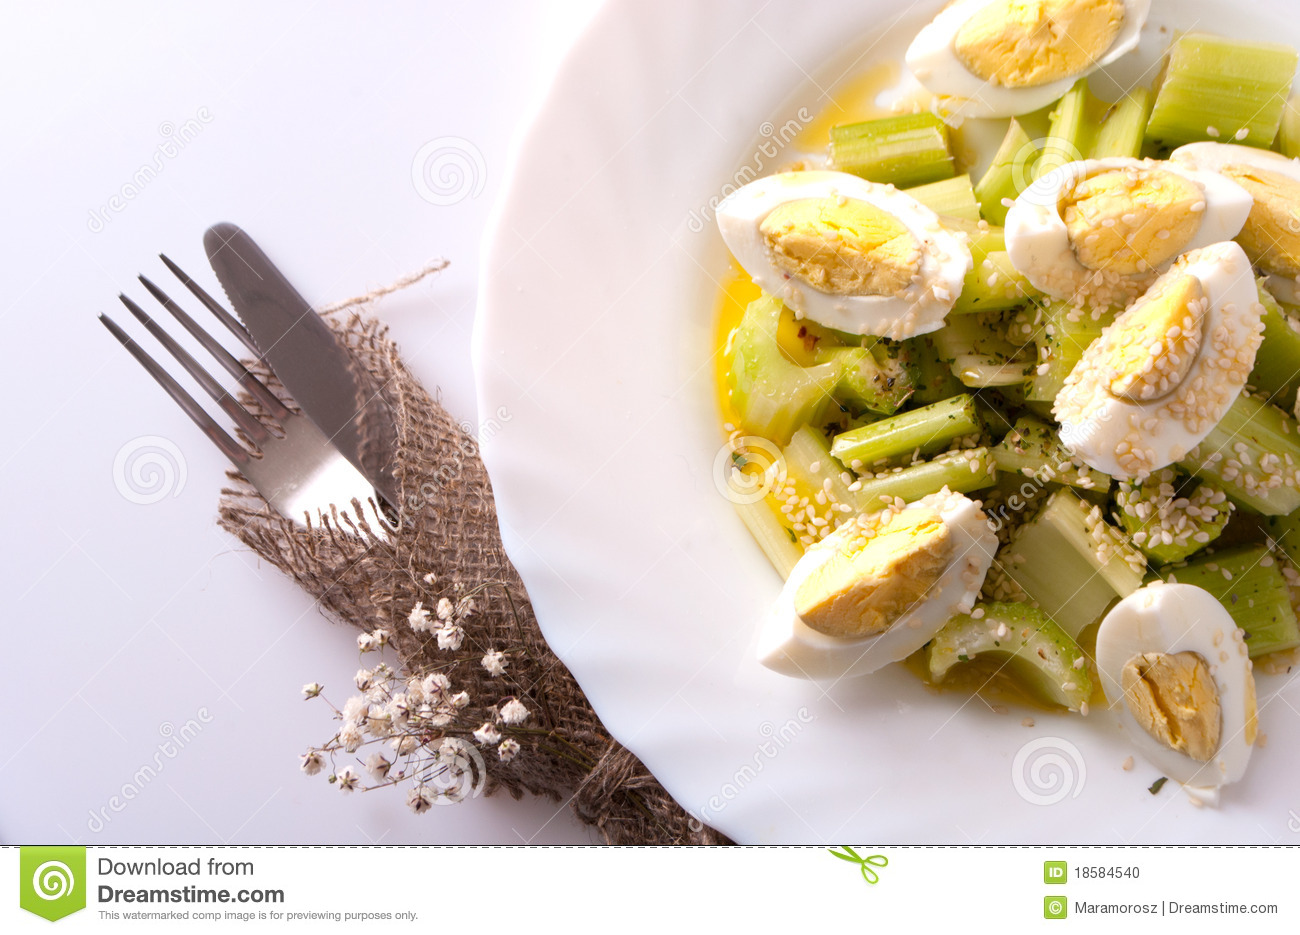 how to make egg and celery salad